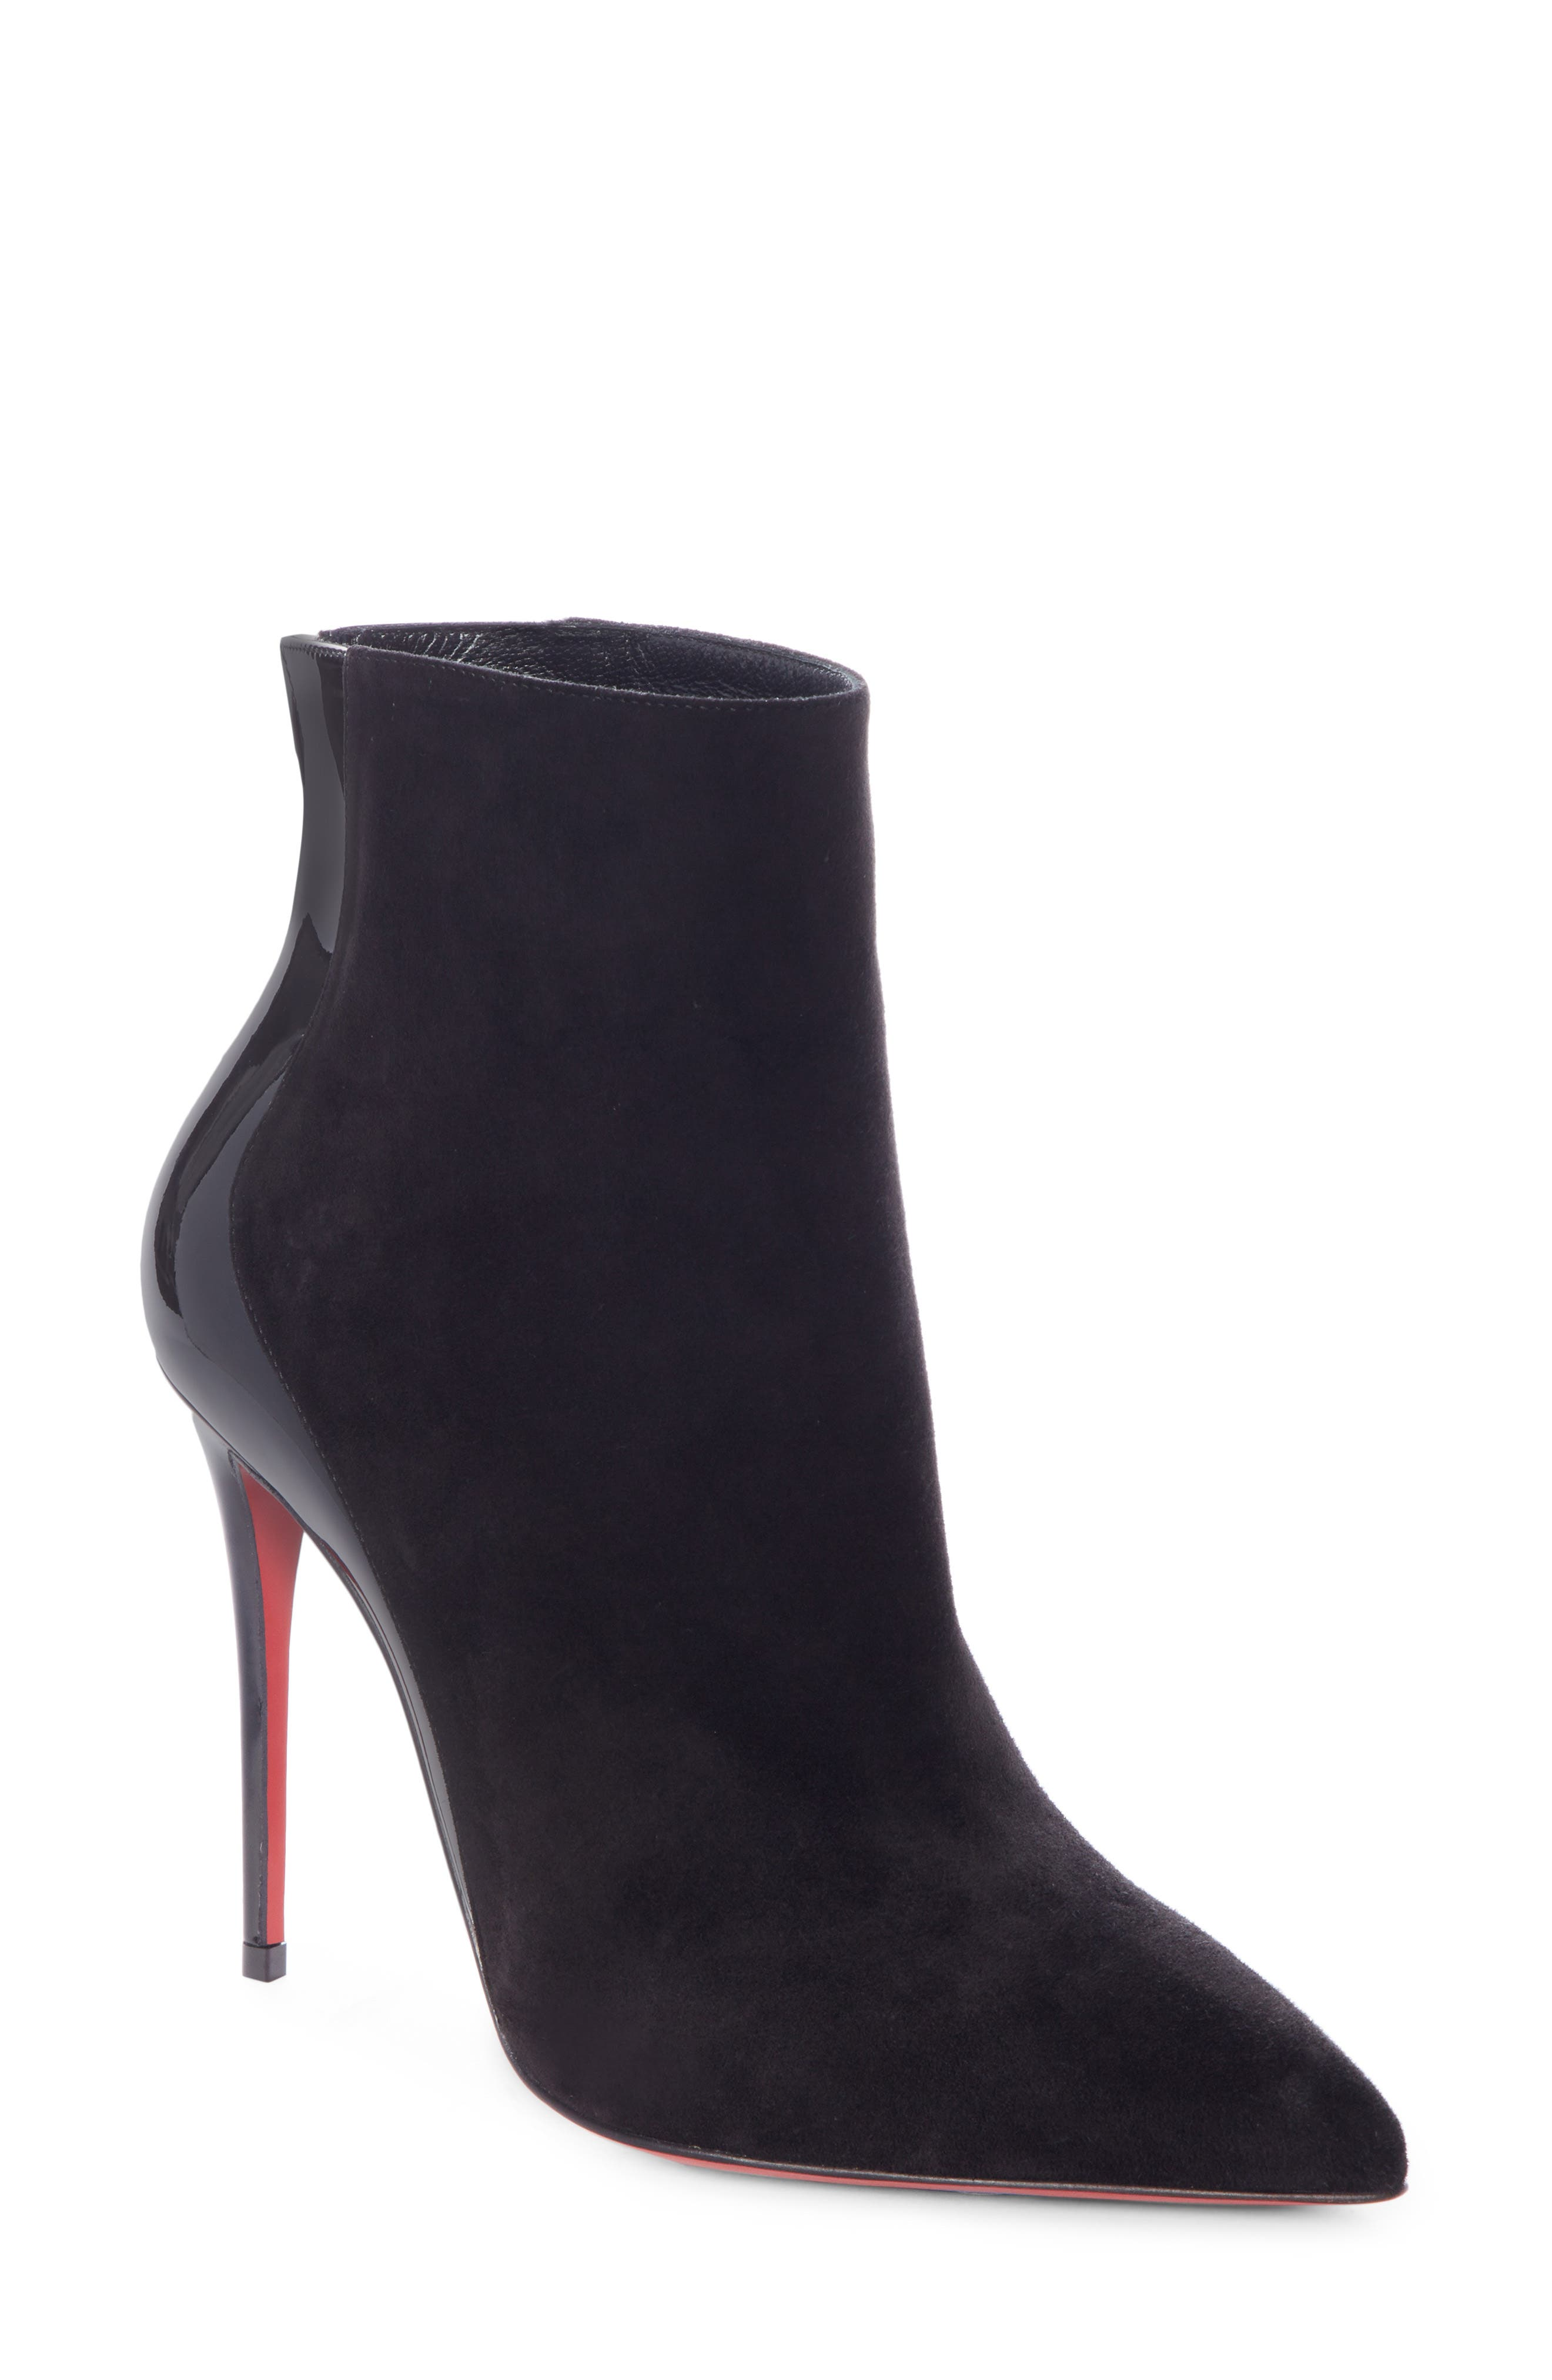 CHRISTIAN LOUBOUTIN Delicotte Pointy Toe Bootie, Main, color, BLACK/ BLACK